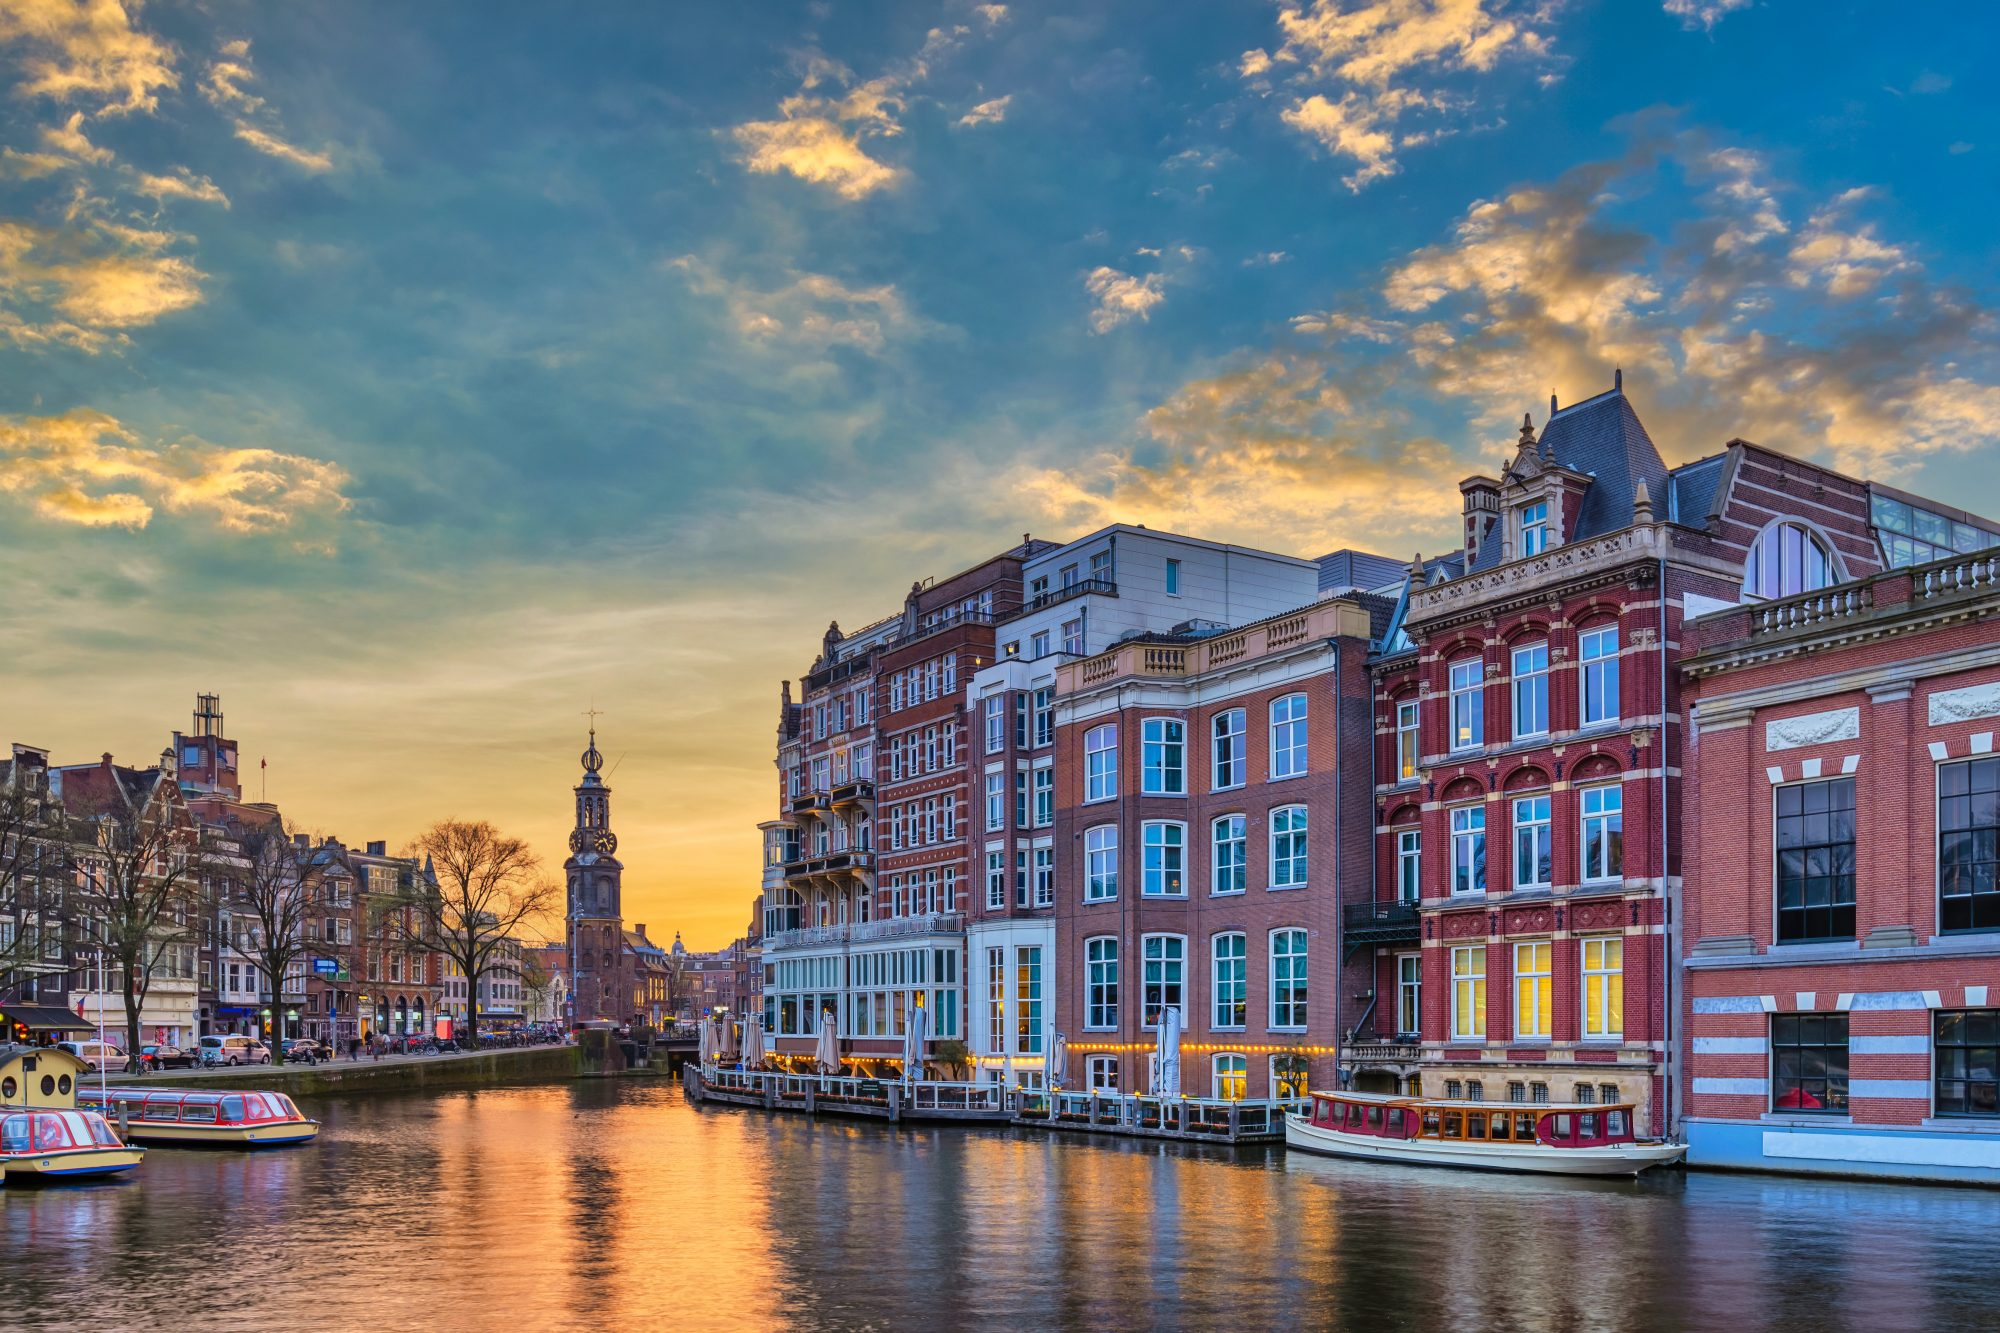 canal and buildings in amsterdam